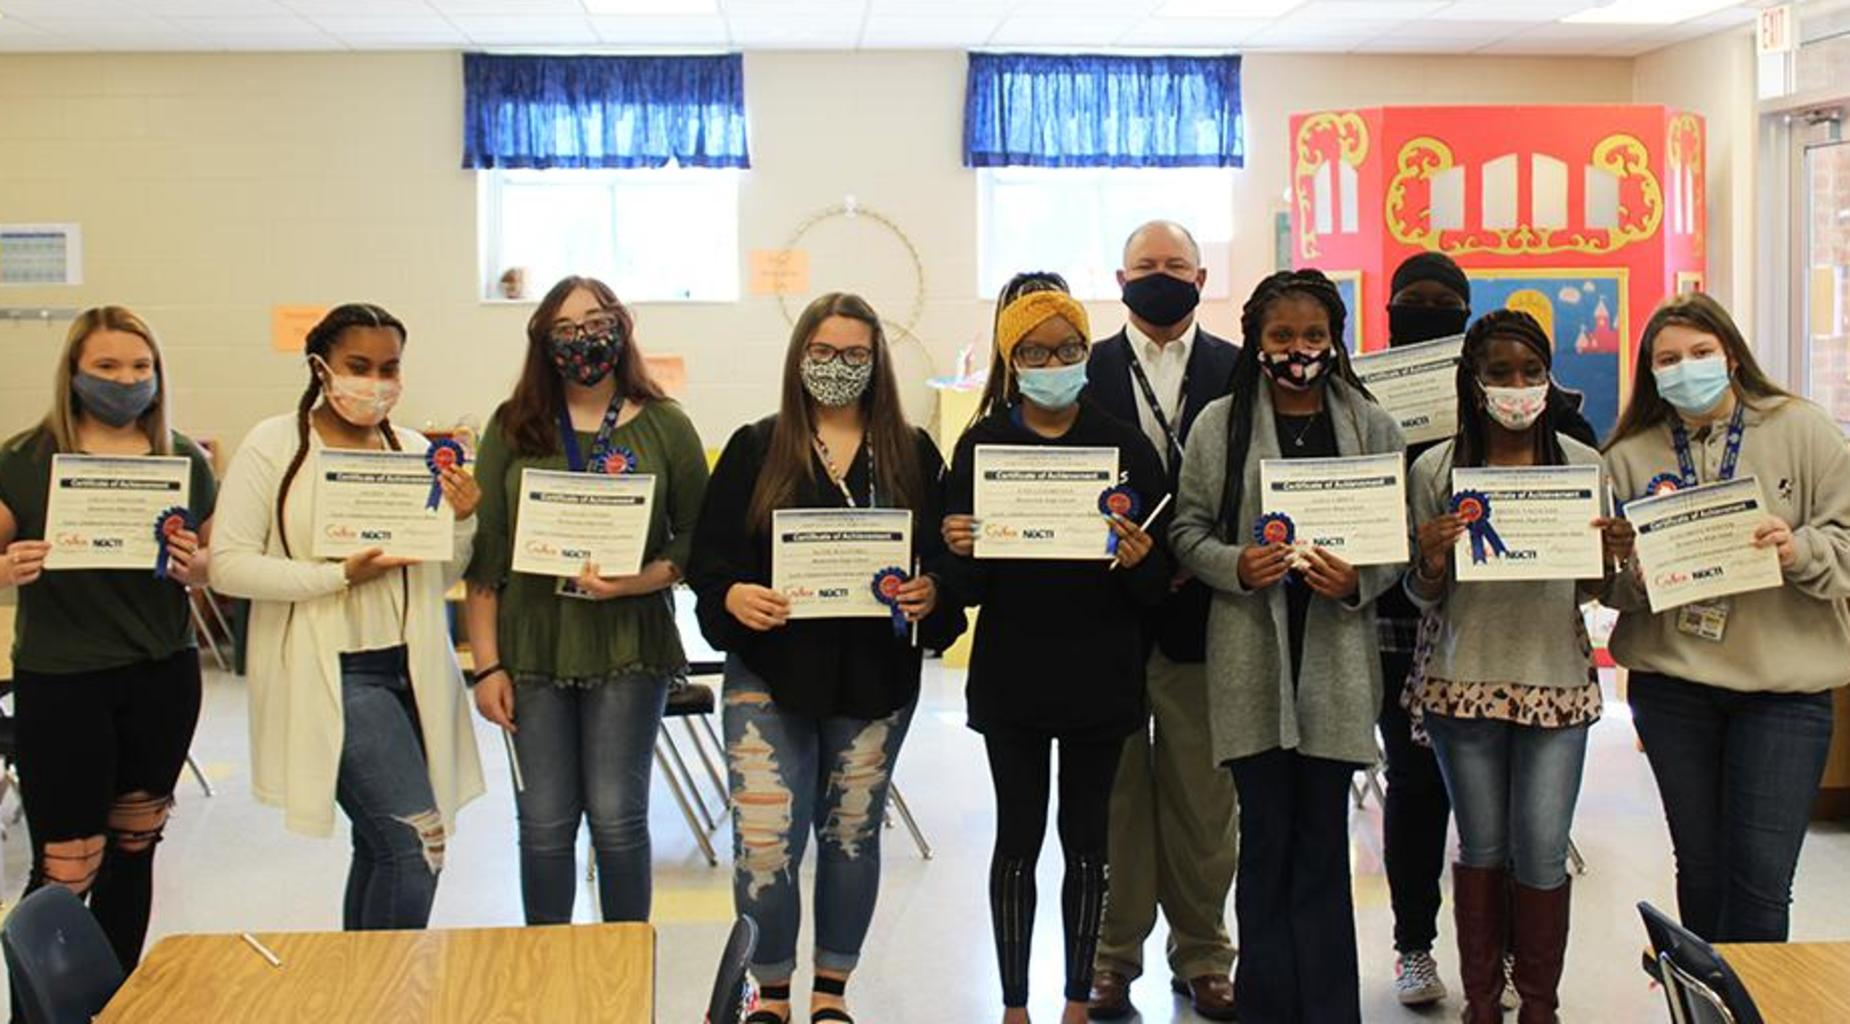 Dr. Scott Spence poses with student-teachers of the Pint Pirates program.